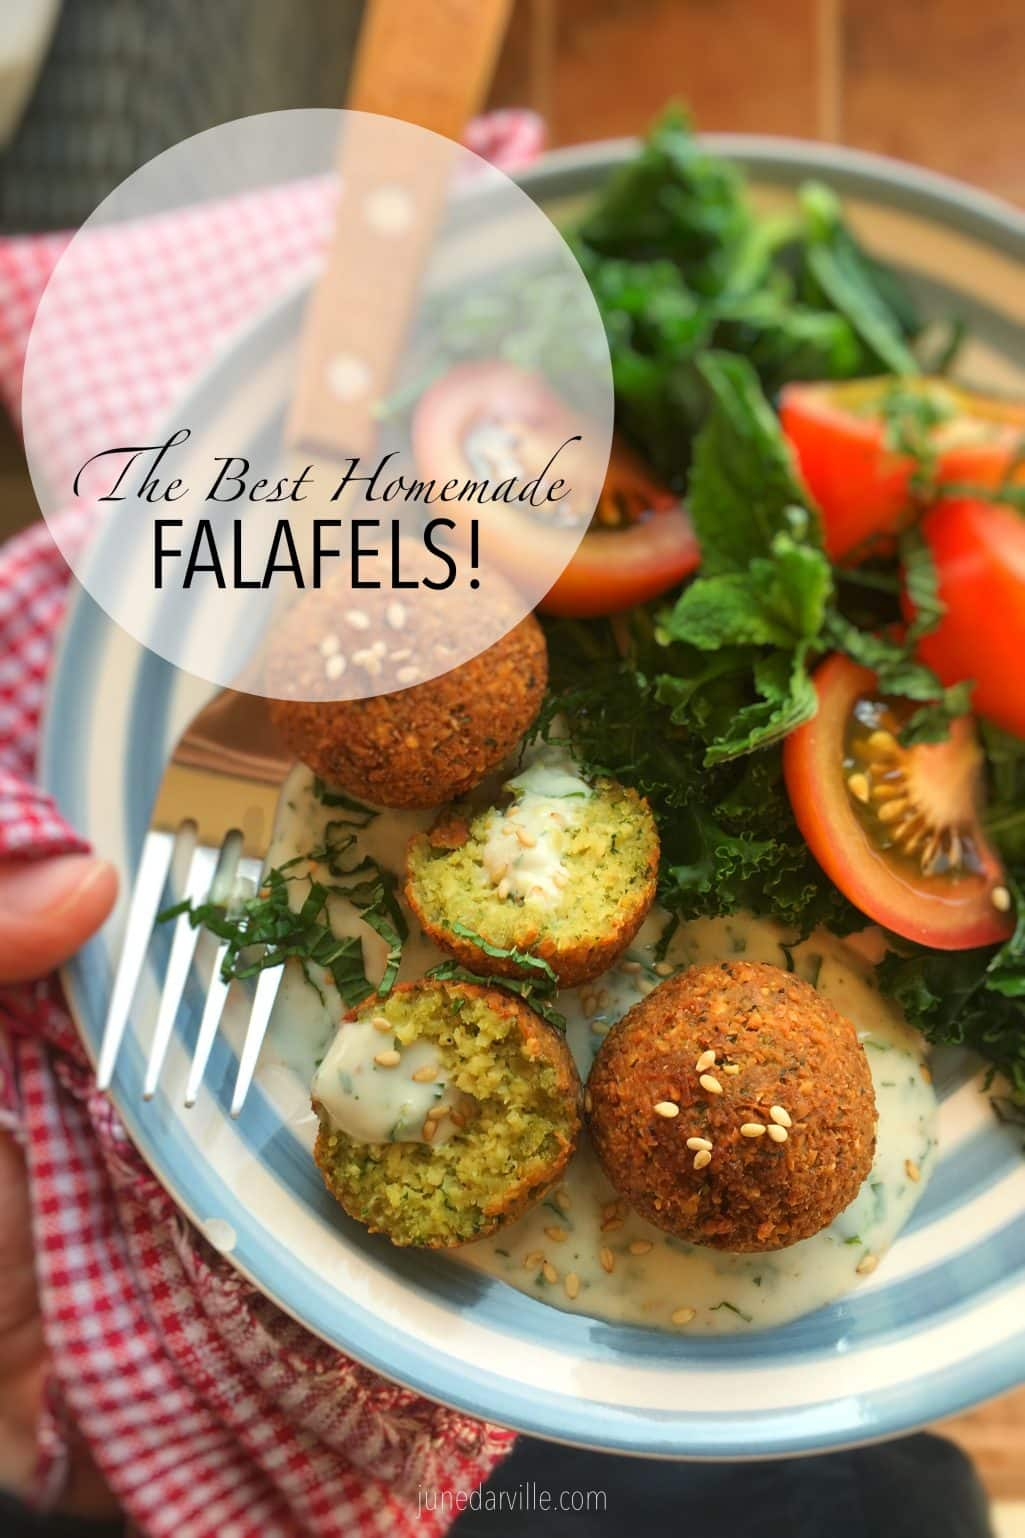 Homemade Falafel Recipe (Best Falafels Ever!) | Simple ...